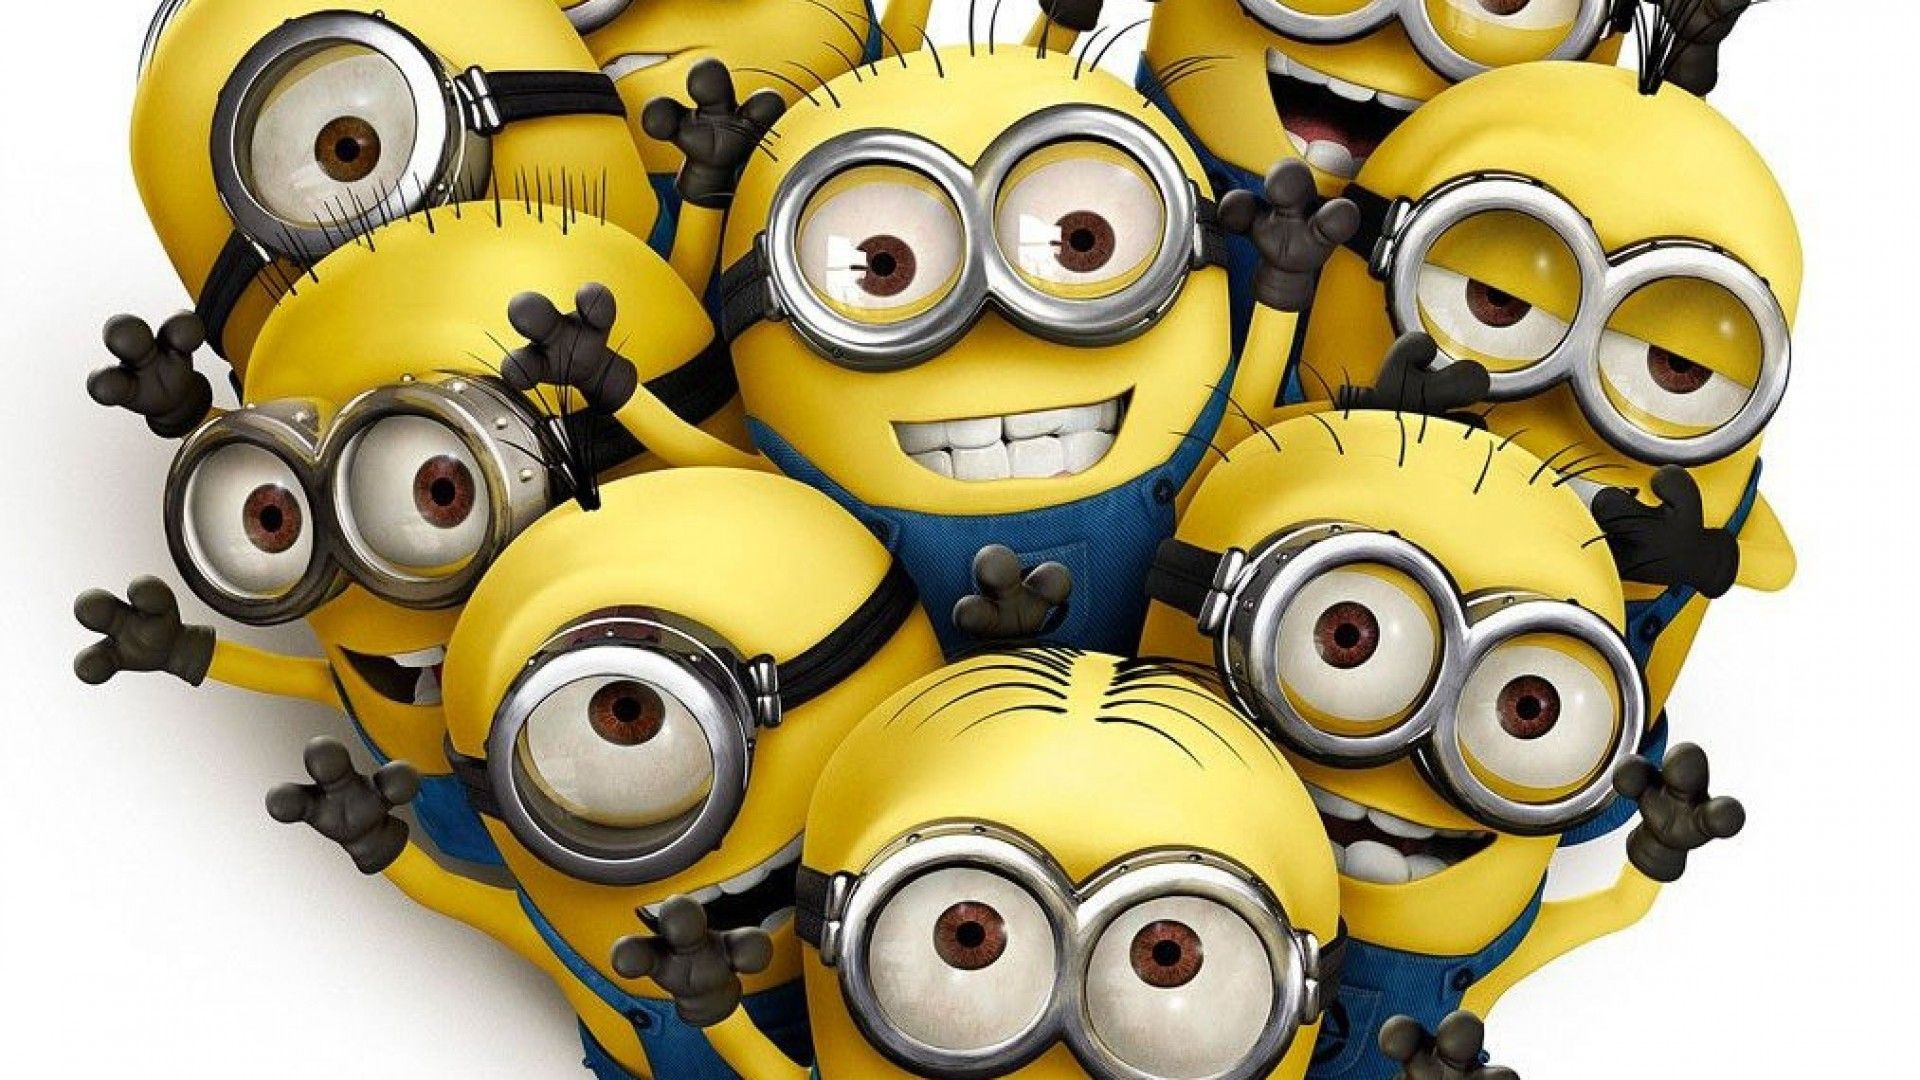 cute minions despicable me ipad wallpaper download iphone